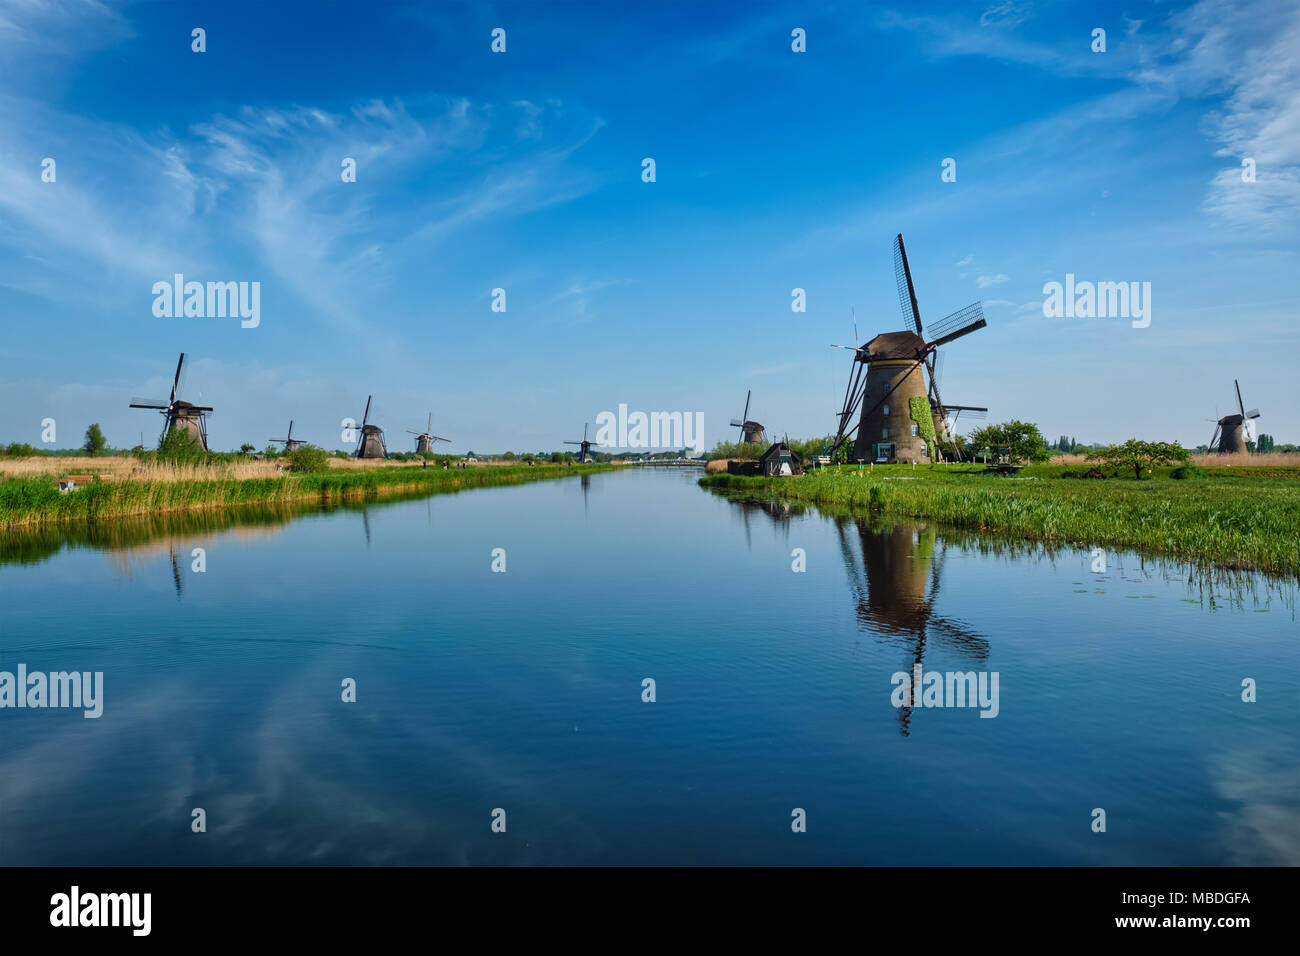 Les moulins à vent de Kinderdijk en Hollande. Pays-bas Photo Stock